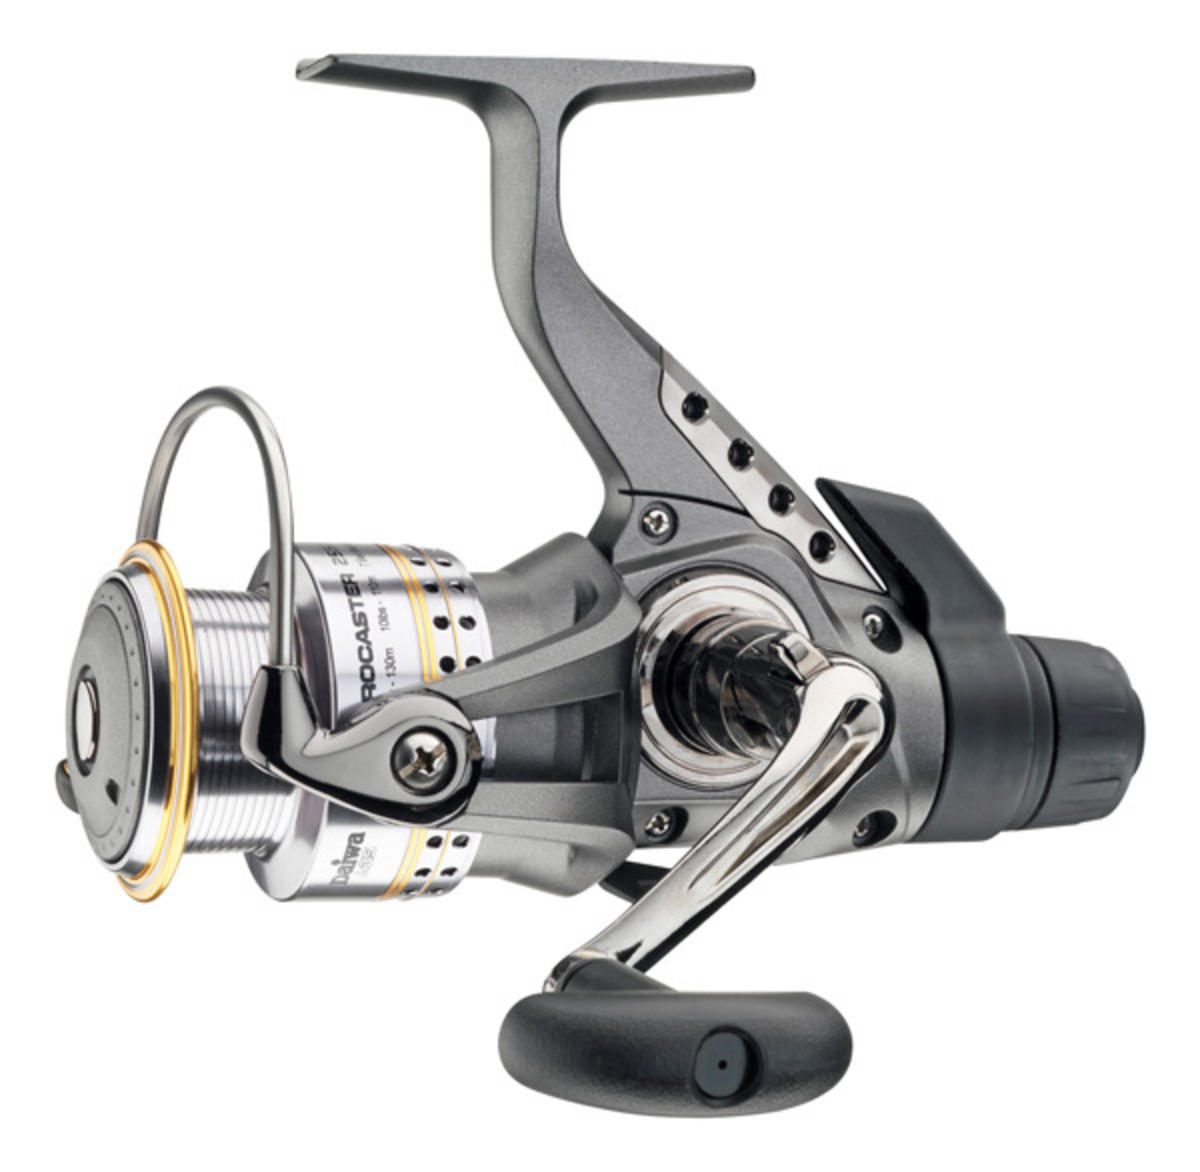 Daiwa procaster 2050x model no prc2050x fishing reel for Daiwa fishing reels